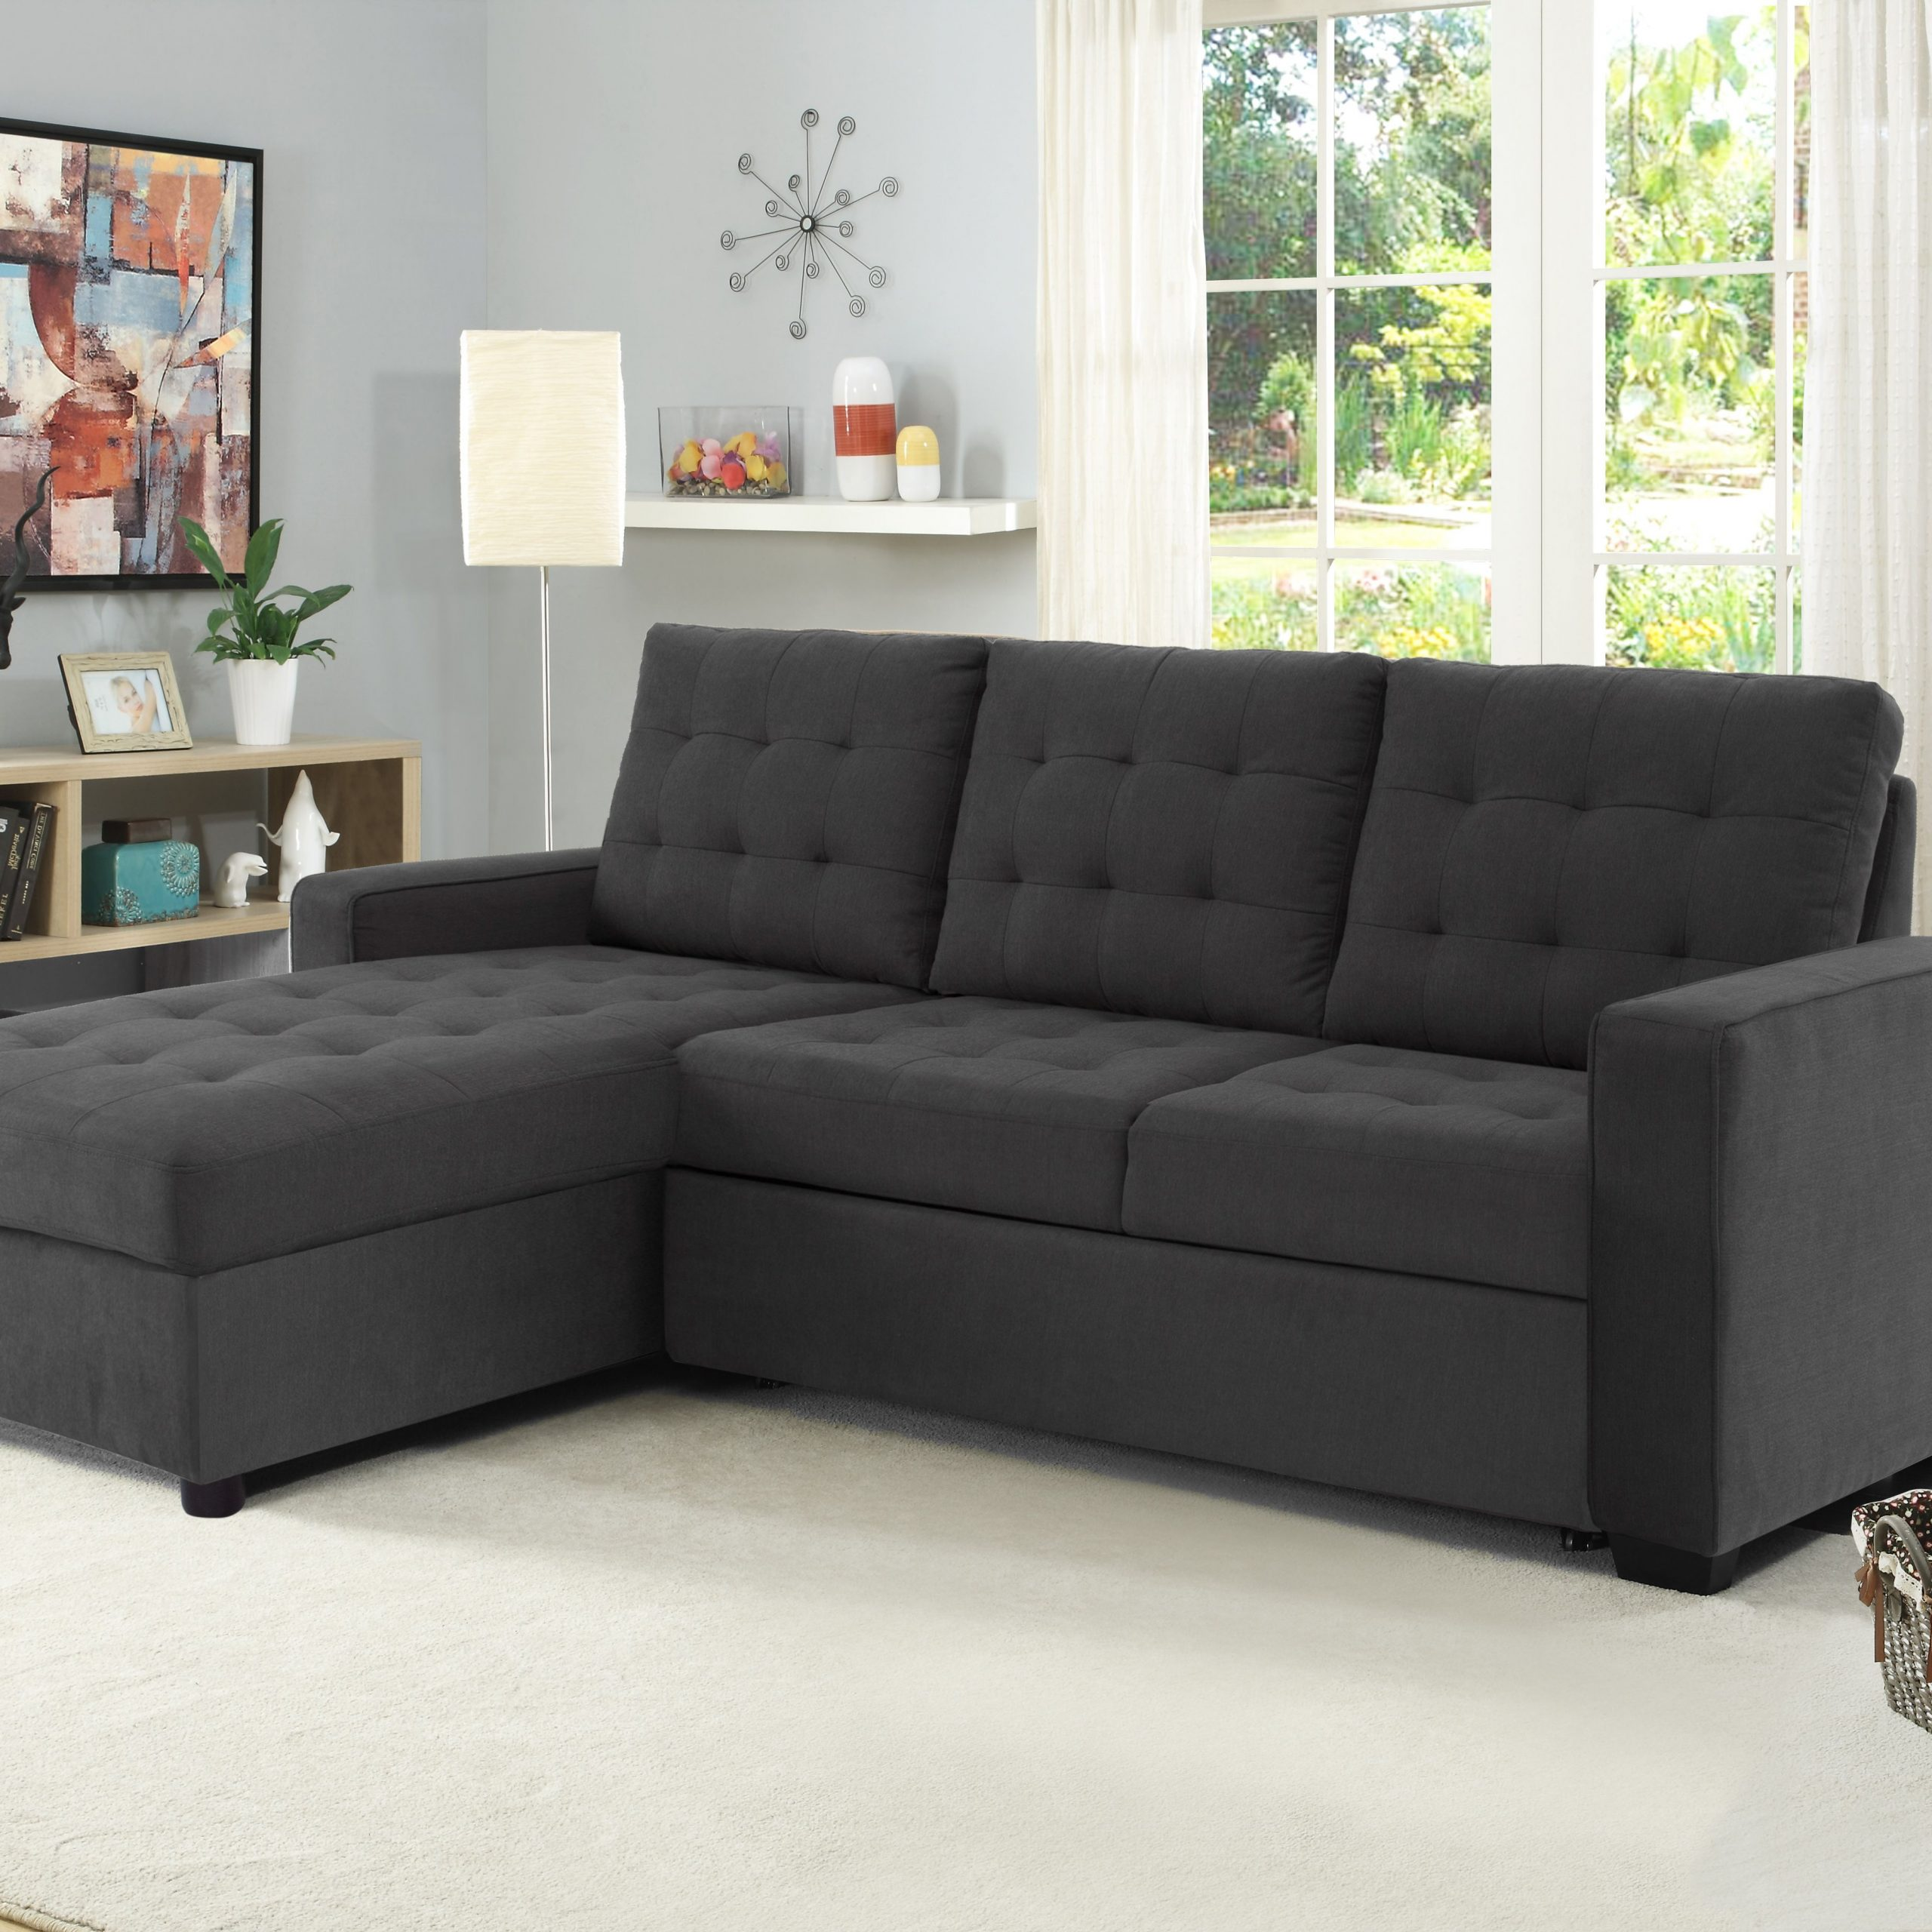 Buy Serta Bostal Sectional Sofa Convertible: Converts Into For Well Liked Live It Cozy Sectional Sofa Beds With Storage (View 2 of 20)